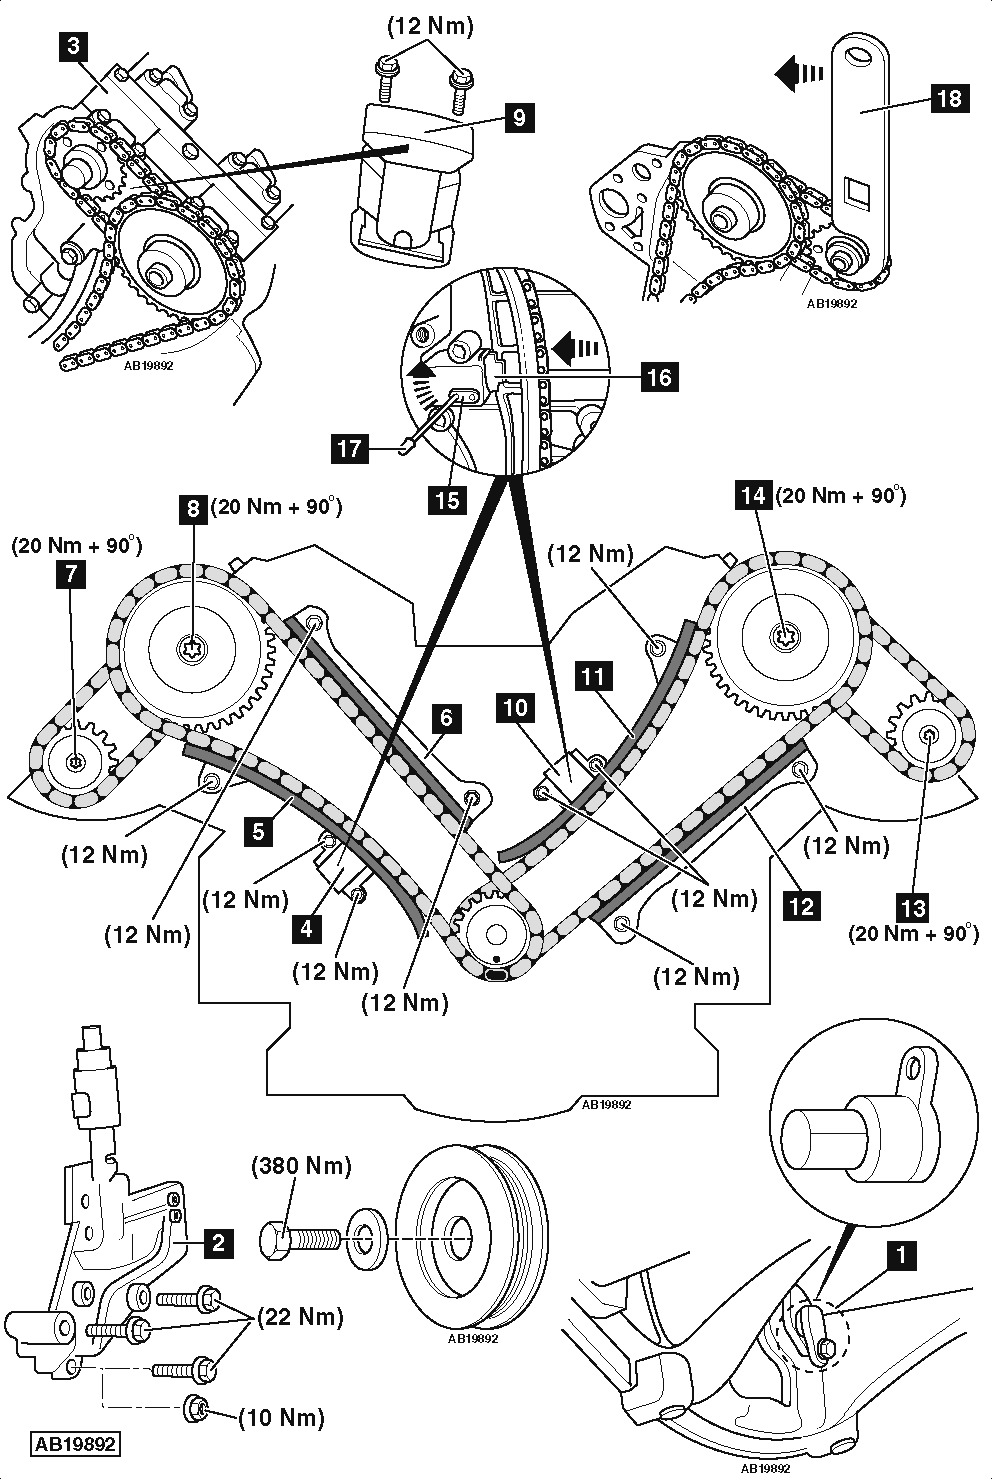 ... Ford 5 4 Triton Engine Problems likewise 97 Ford F 150 4x4 4 6 Engine  Diagram ...